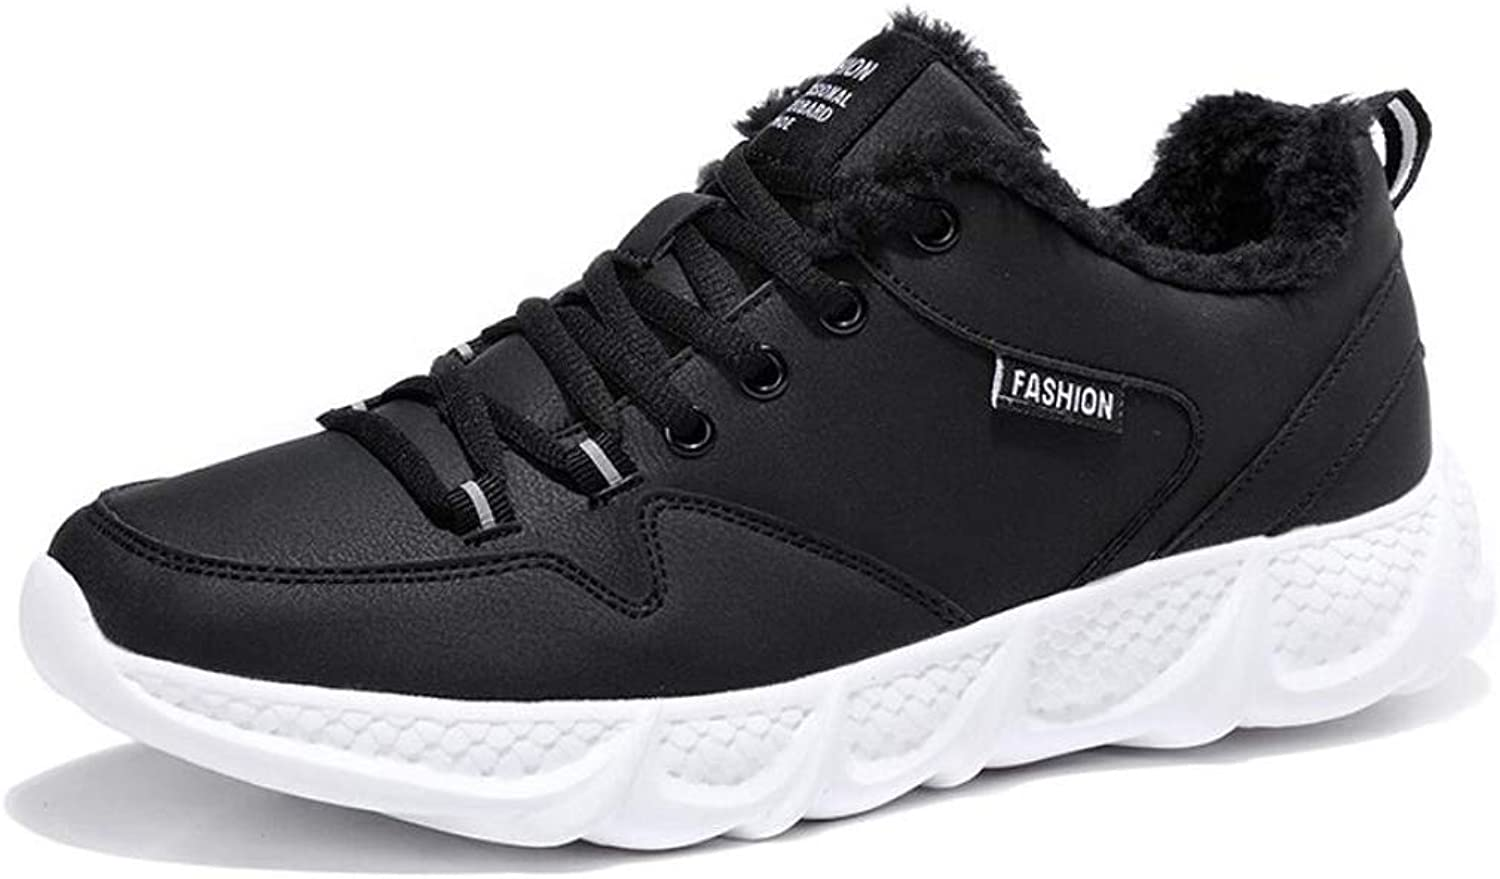 Zxcer Lightweight Walking Athletic shoes Breathable Mesh Sneakers Casual Running shoes Air Cushion Lace-up Trainers